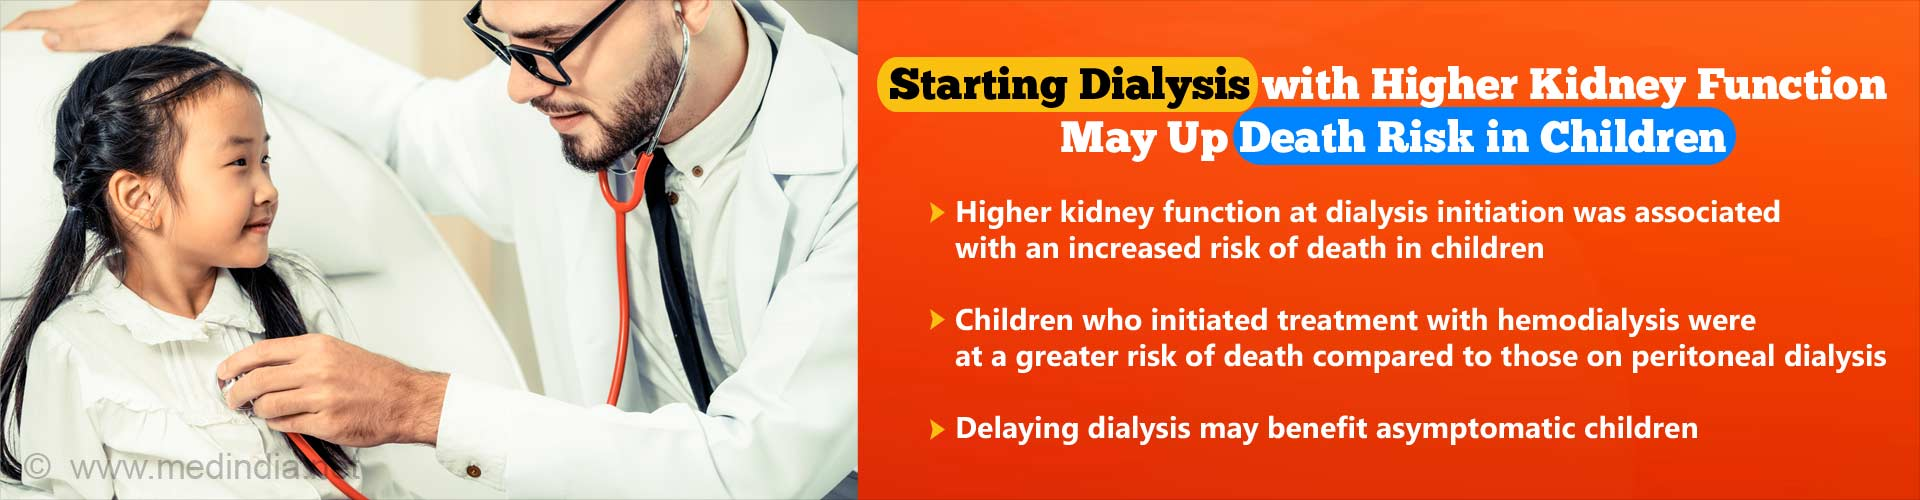 Initiating Dialysis With Higher Kidney Function may Pose Death Risk in Children